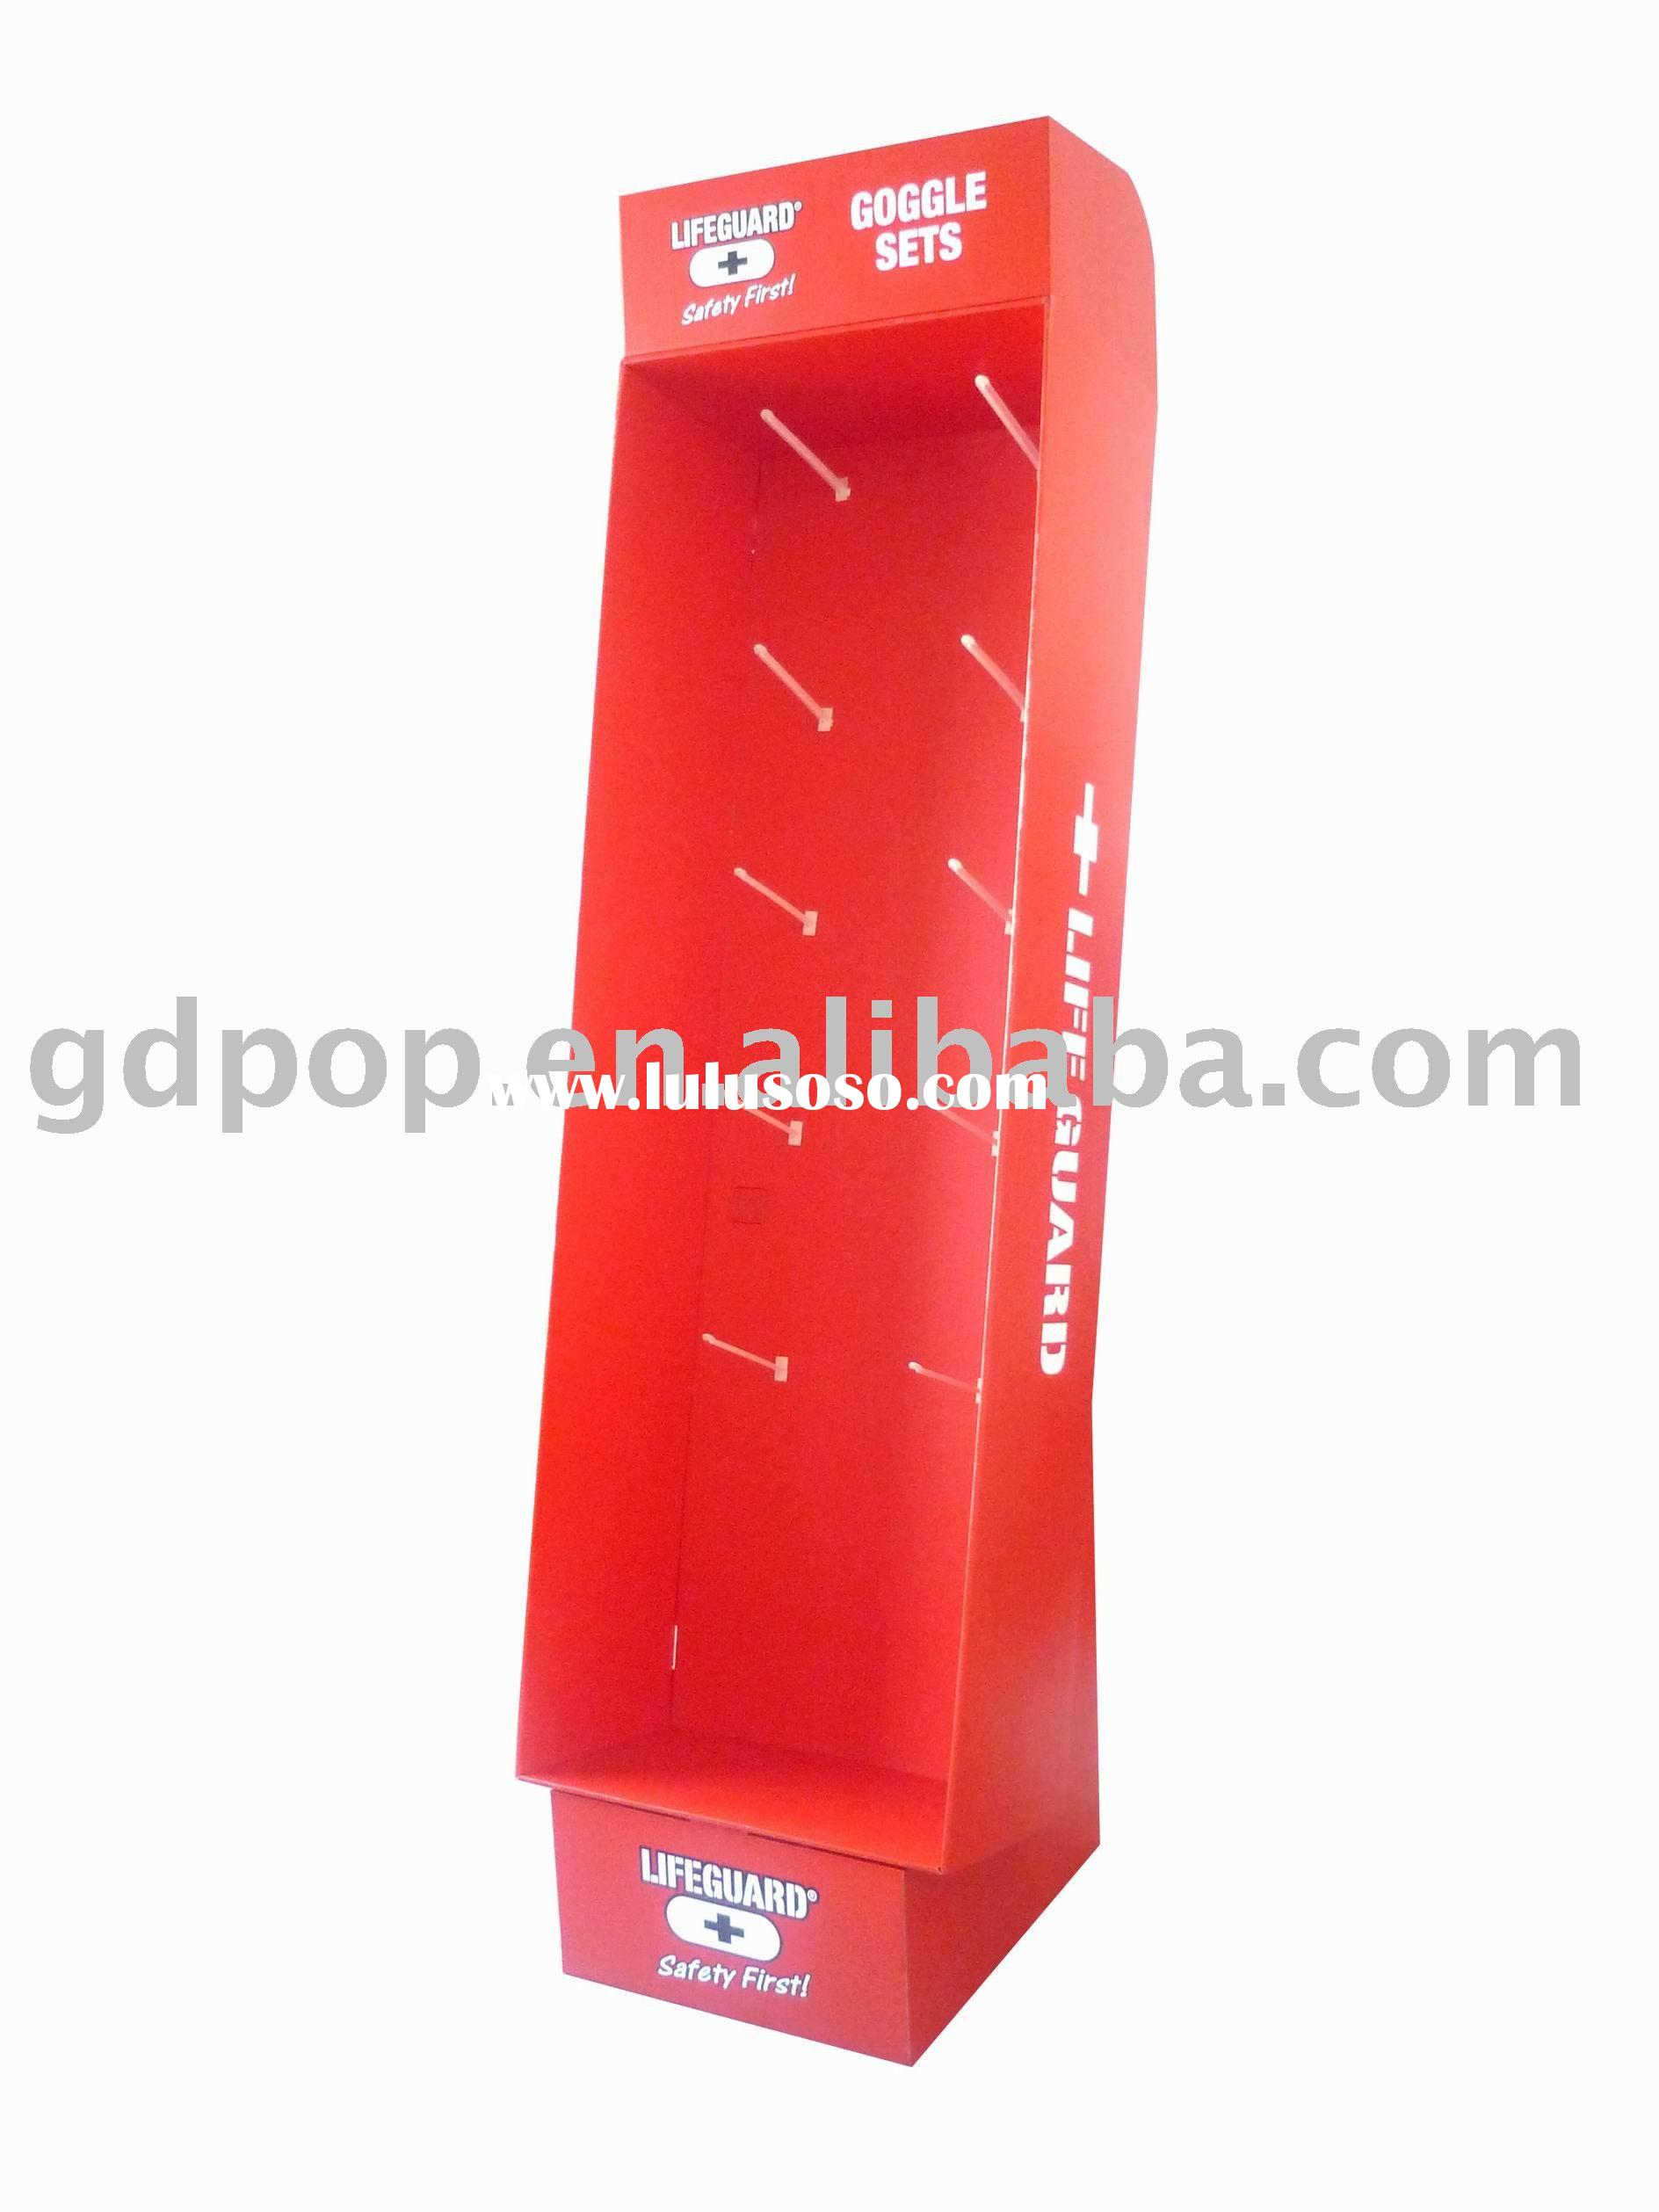 floor display,display stand, cardboard display, corrugated display,advertising display